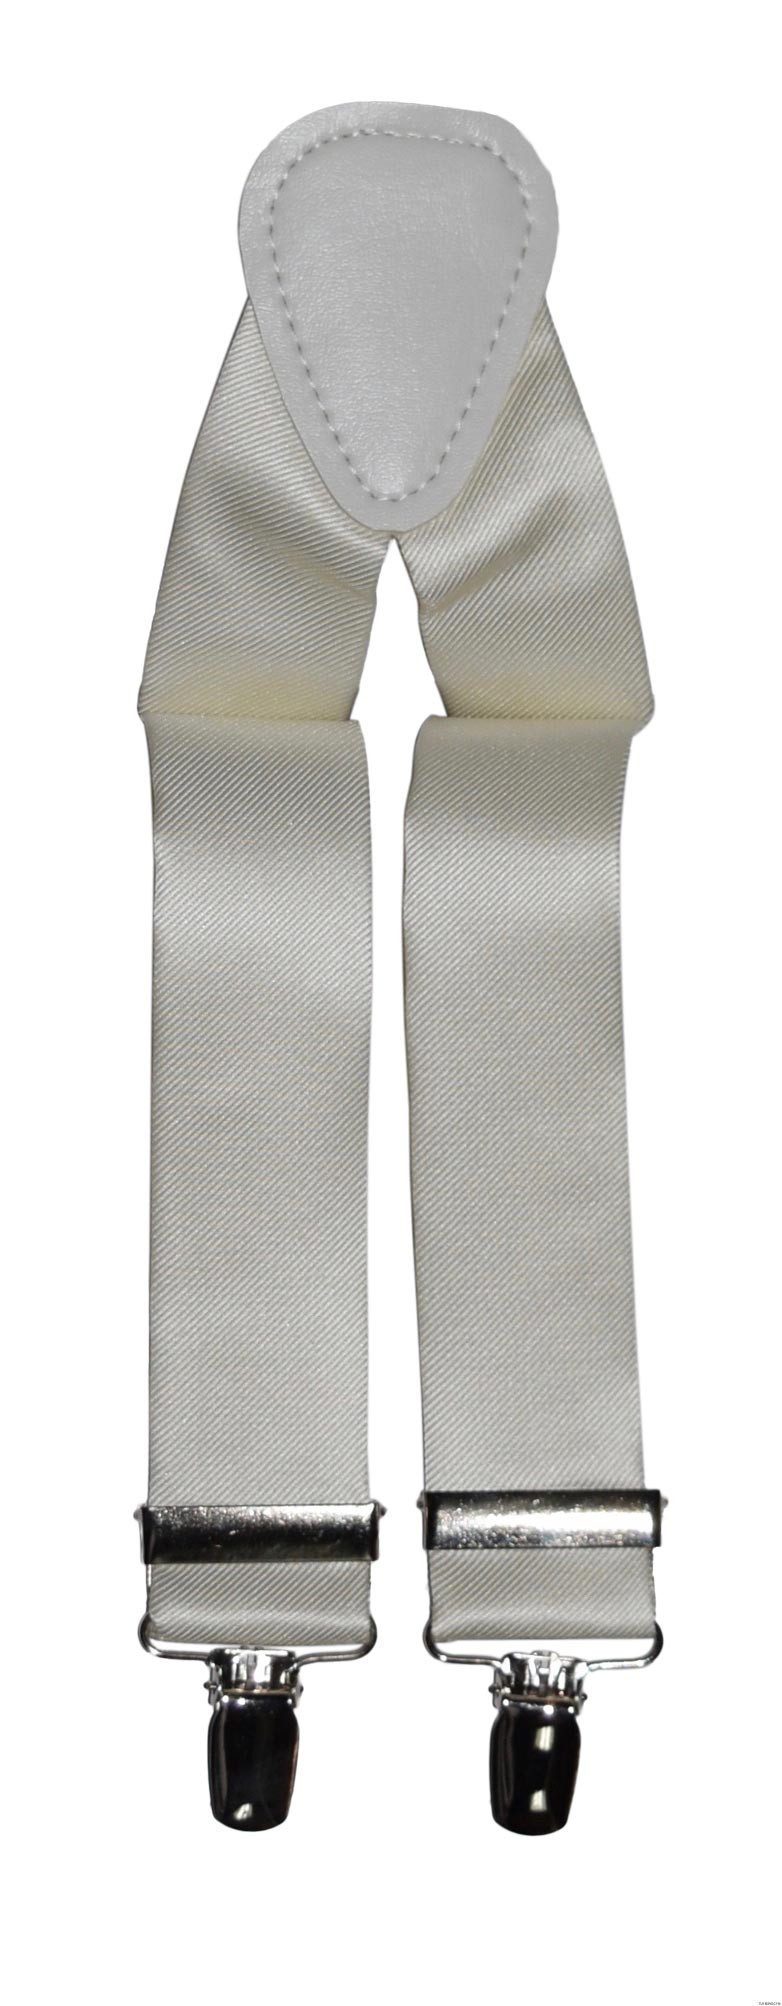 off-white ivory satin suspenders